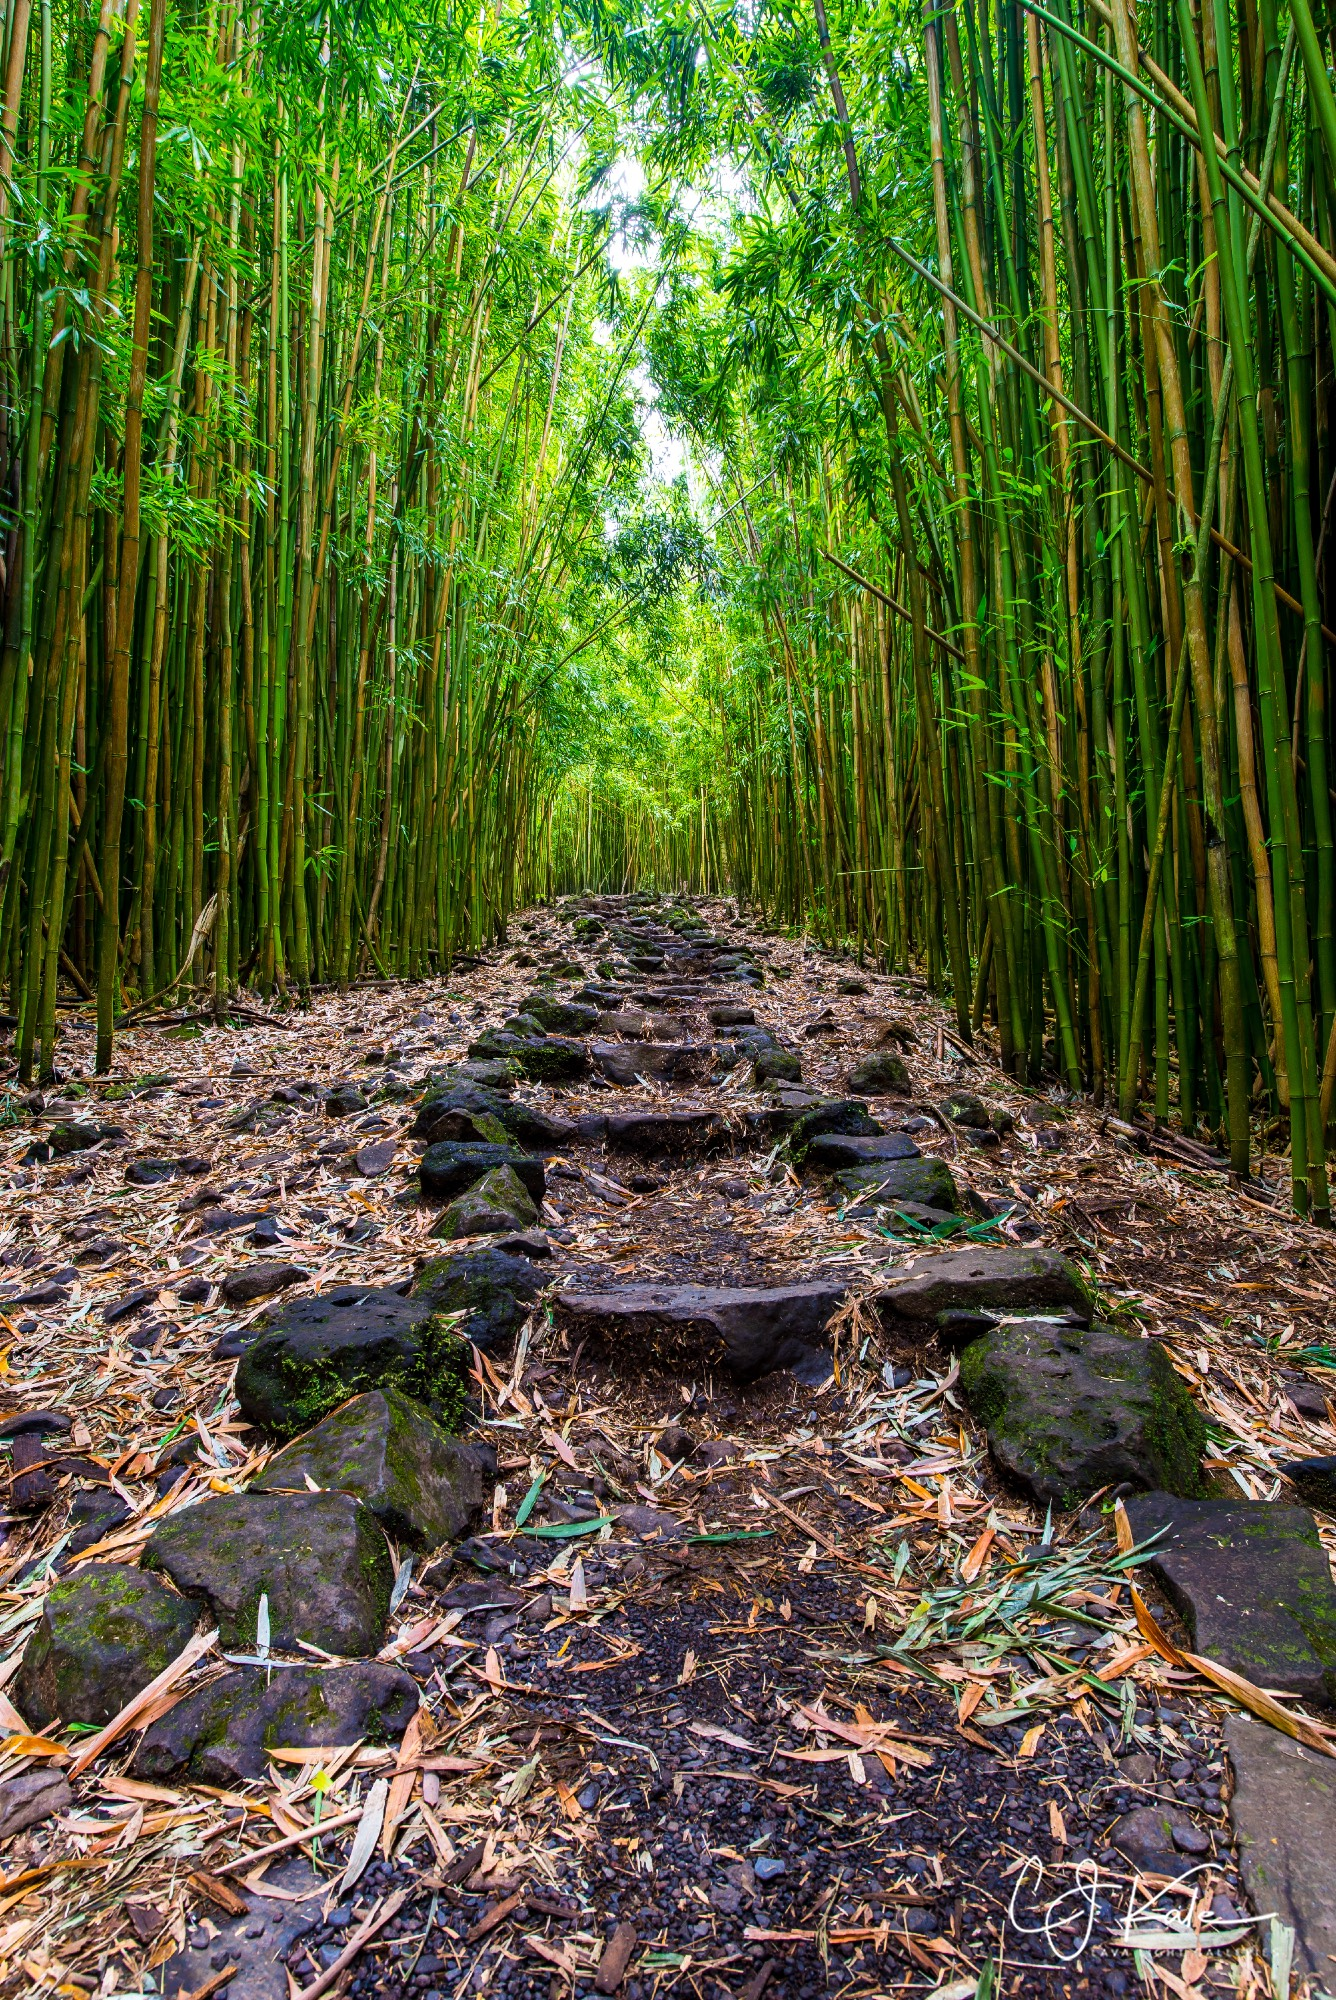 CJ captures a section of the Bamboo Path on Maui.